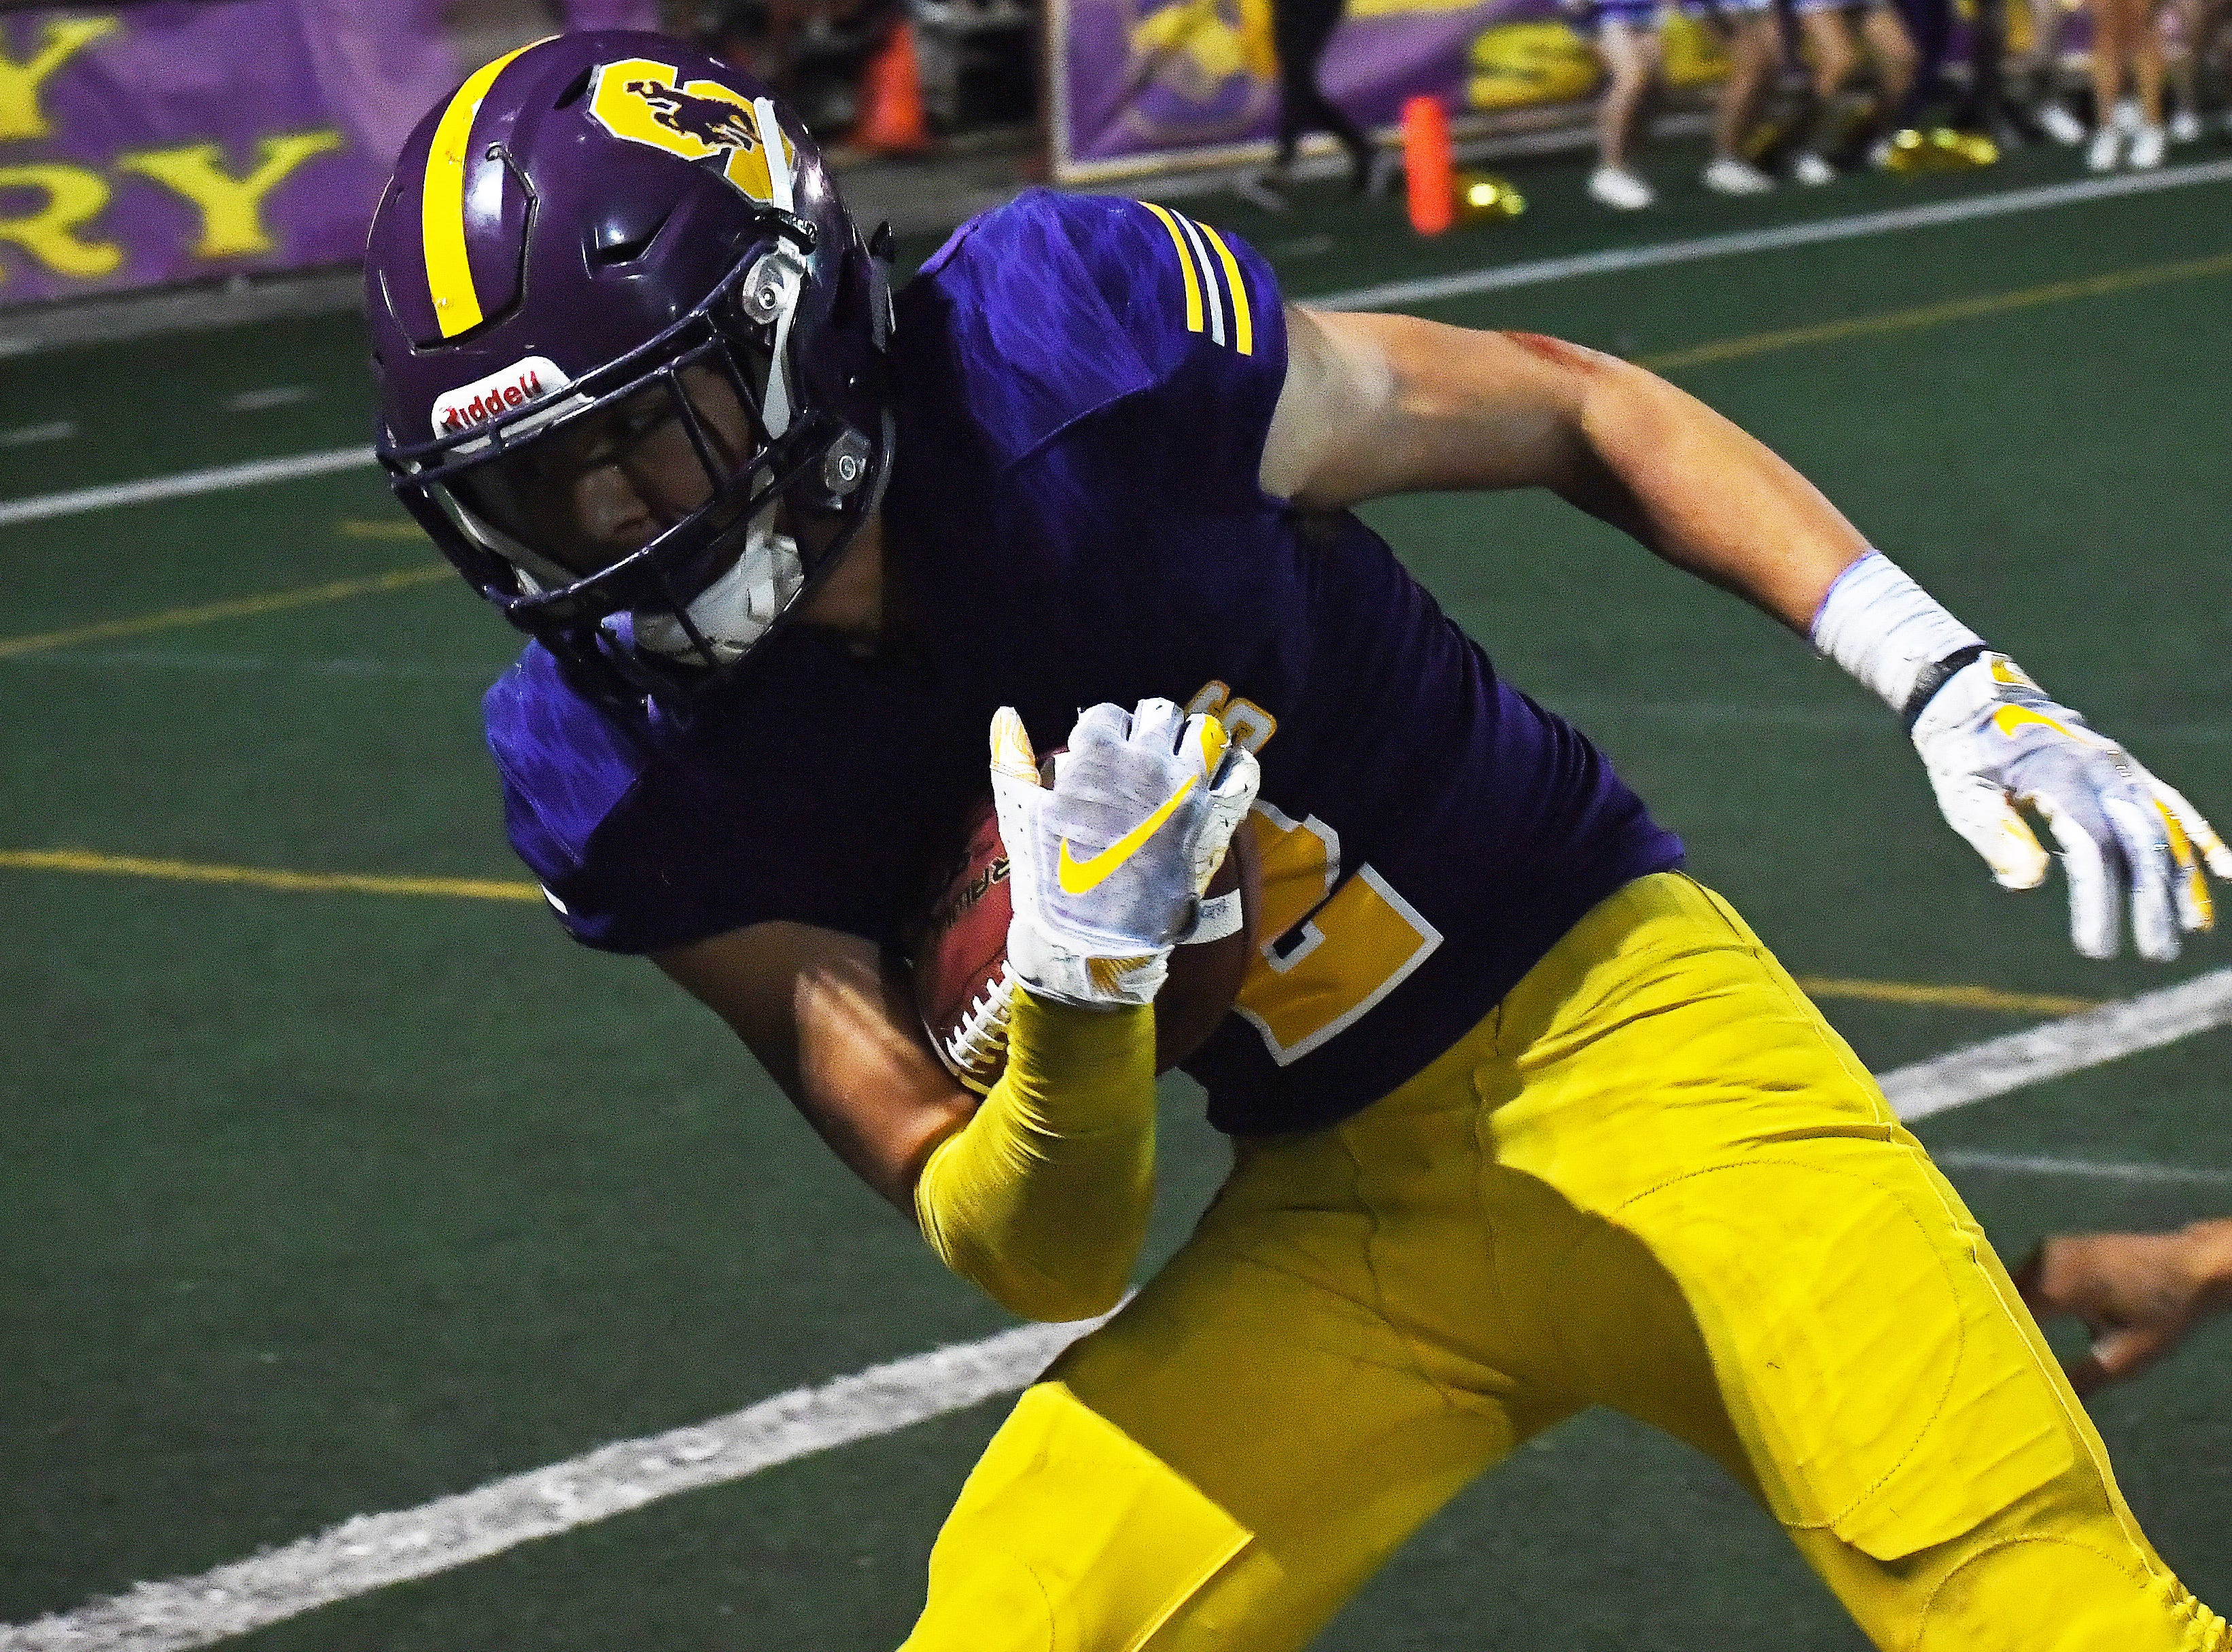 Salinas wide receiver Zachary Robison (2) gets pushed out of bounds.